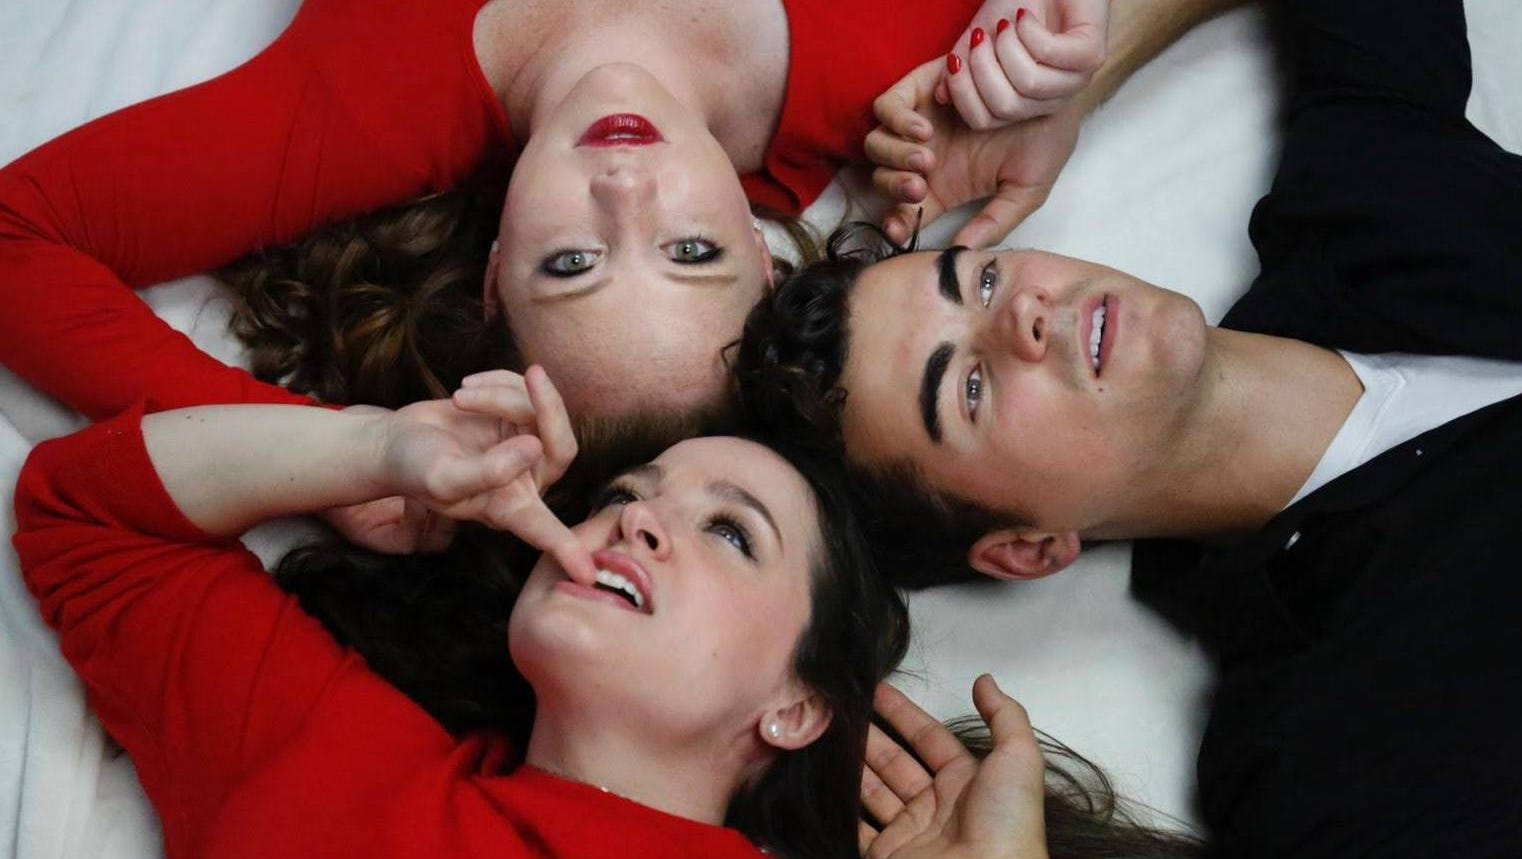 """An evening of cabaret titled """"Two's Company. Three's Complicated"""" will be performed by Anna Galavis (clockwise from top left), Duncan Menzies and Rebecca Peterson Feb. 15 and 16 at Rolling Bay Hall on Bainbridge Island."""